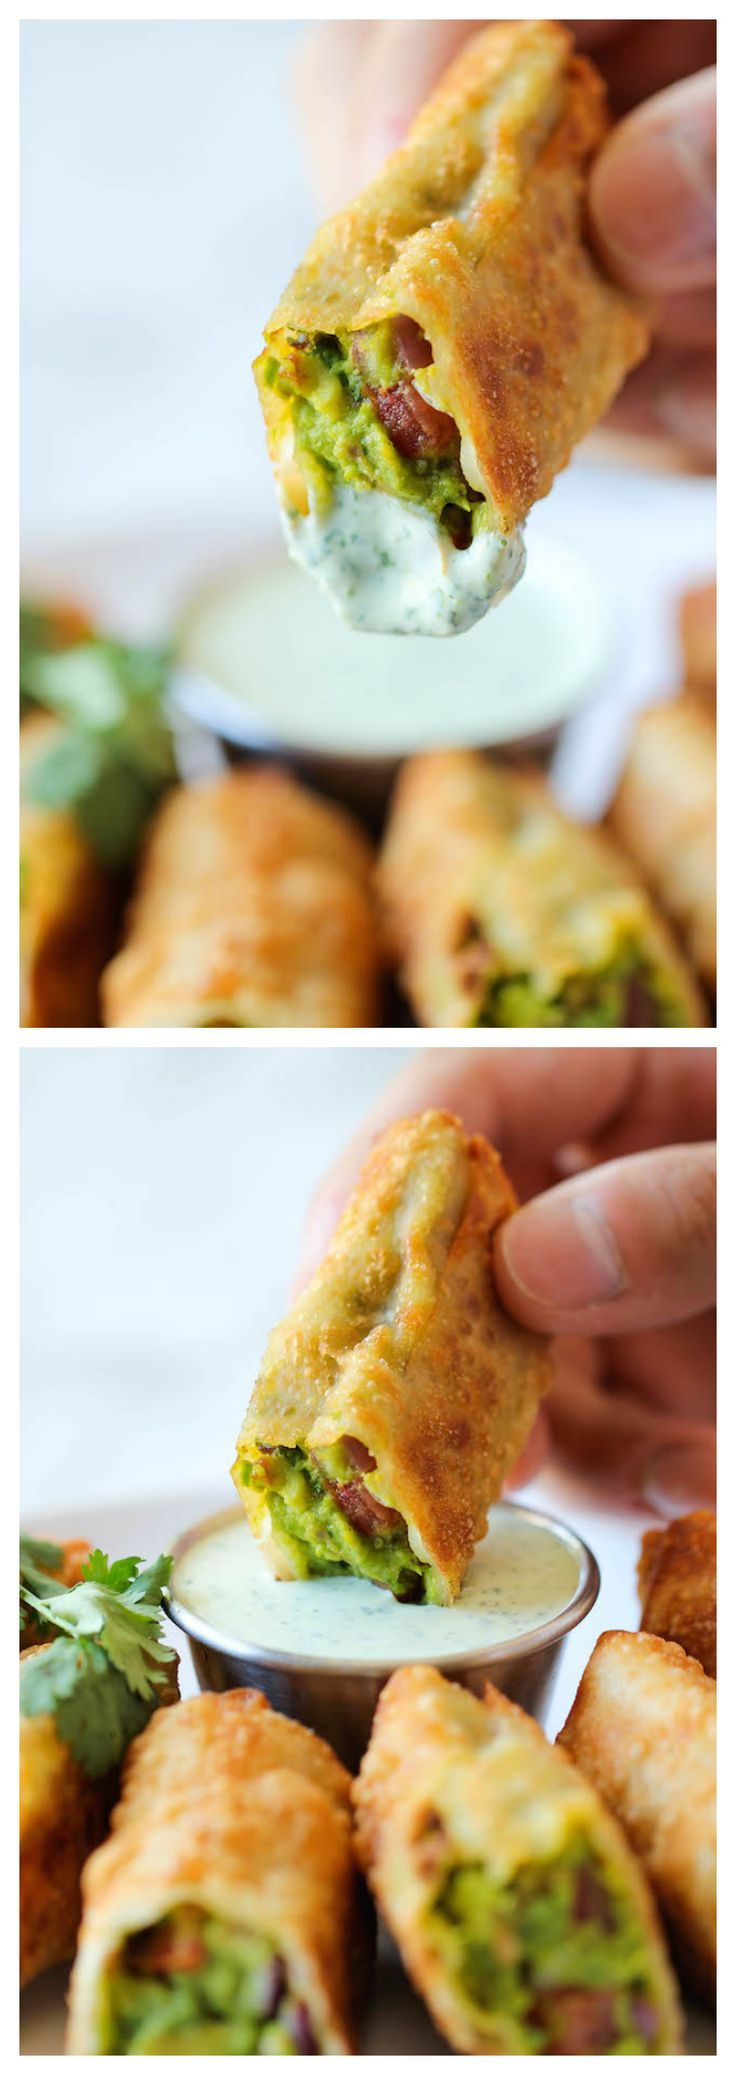 Cheesecake Factory Avocado Egg Rolls - So much cheaper to make at home and they taste better too!